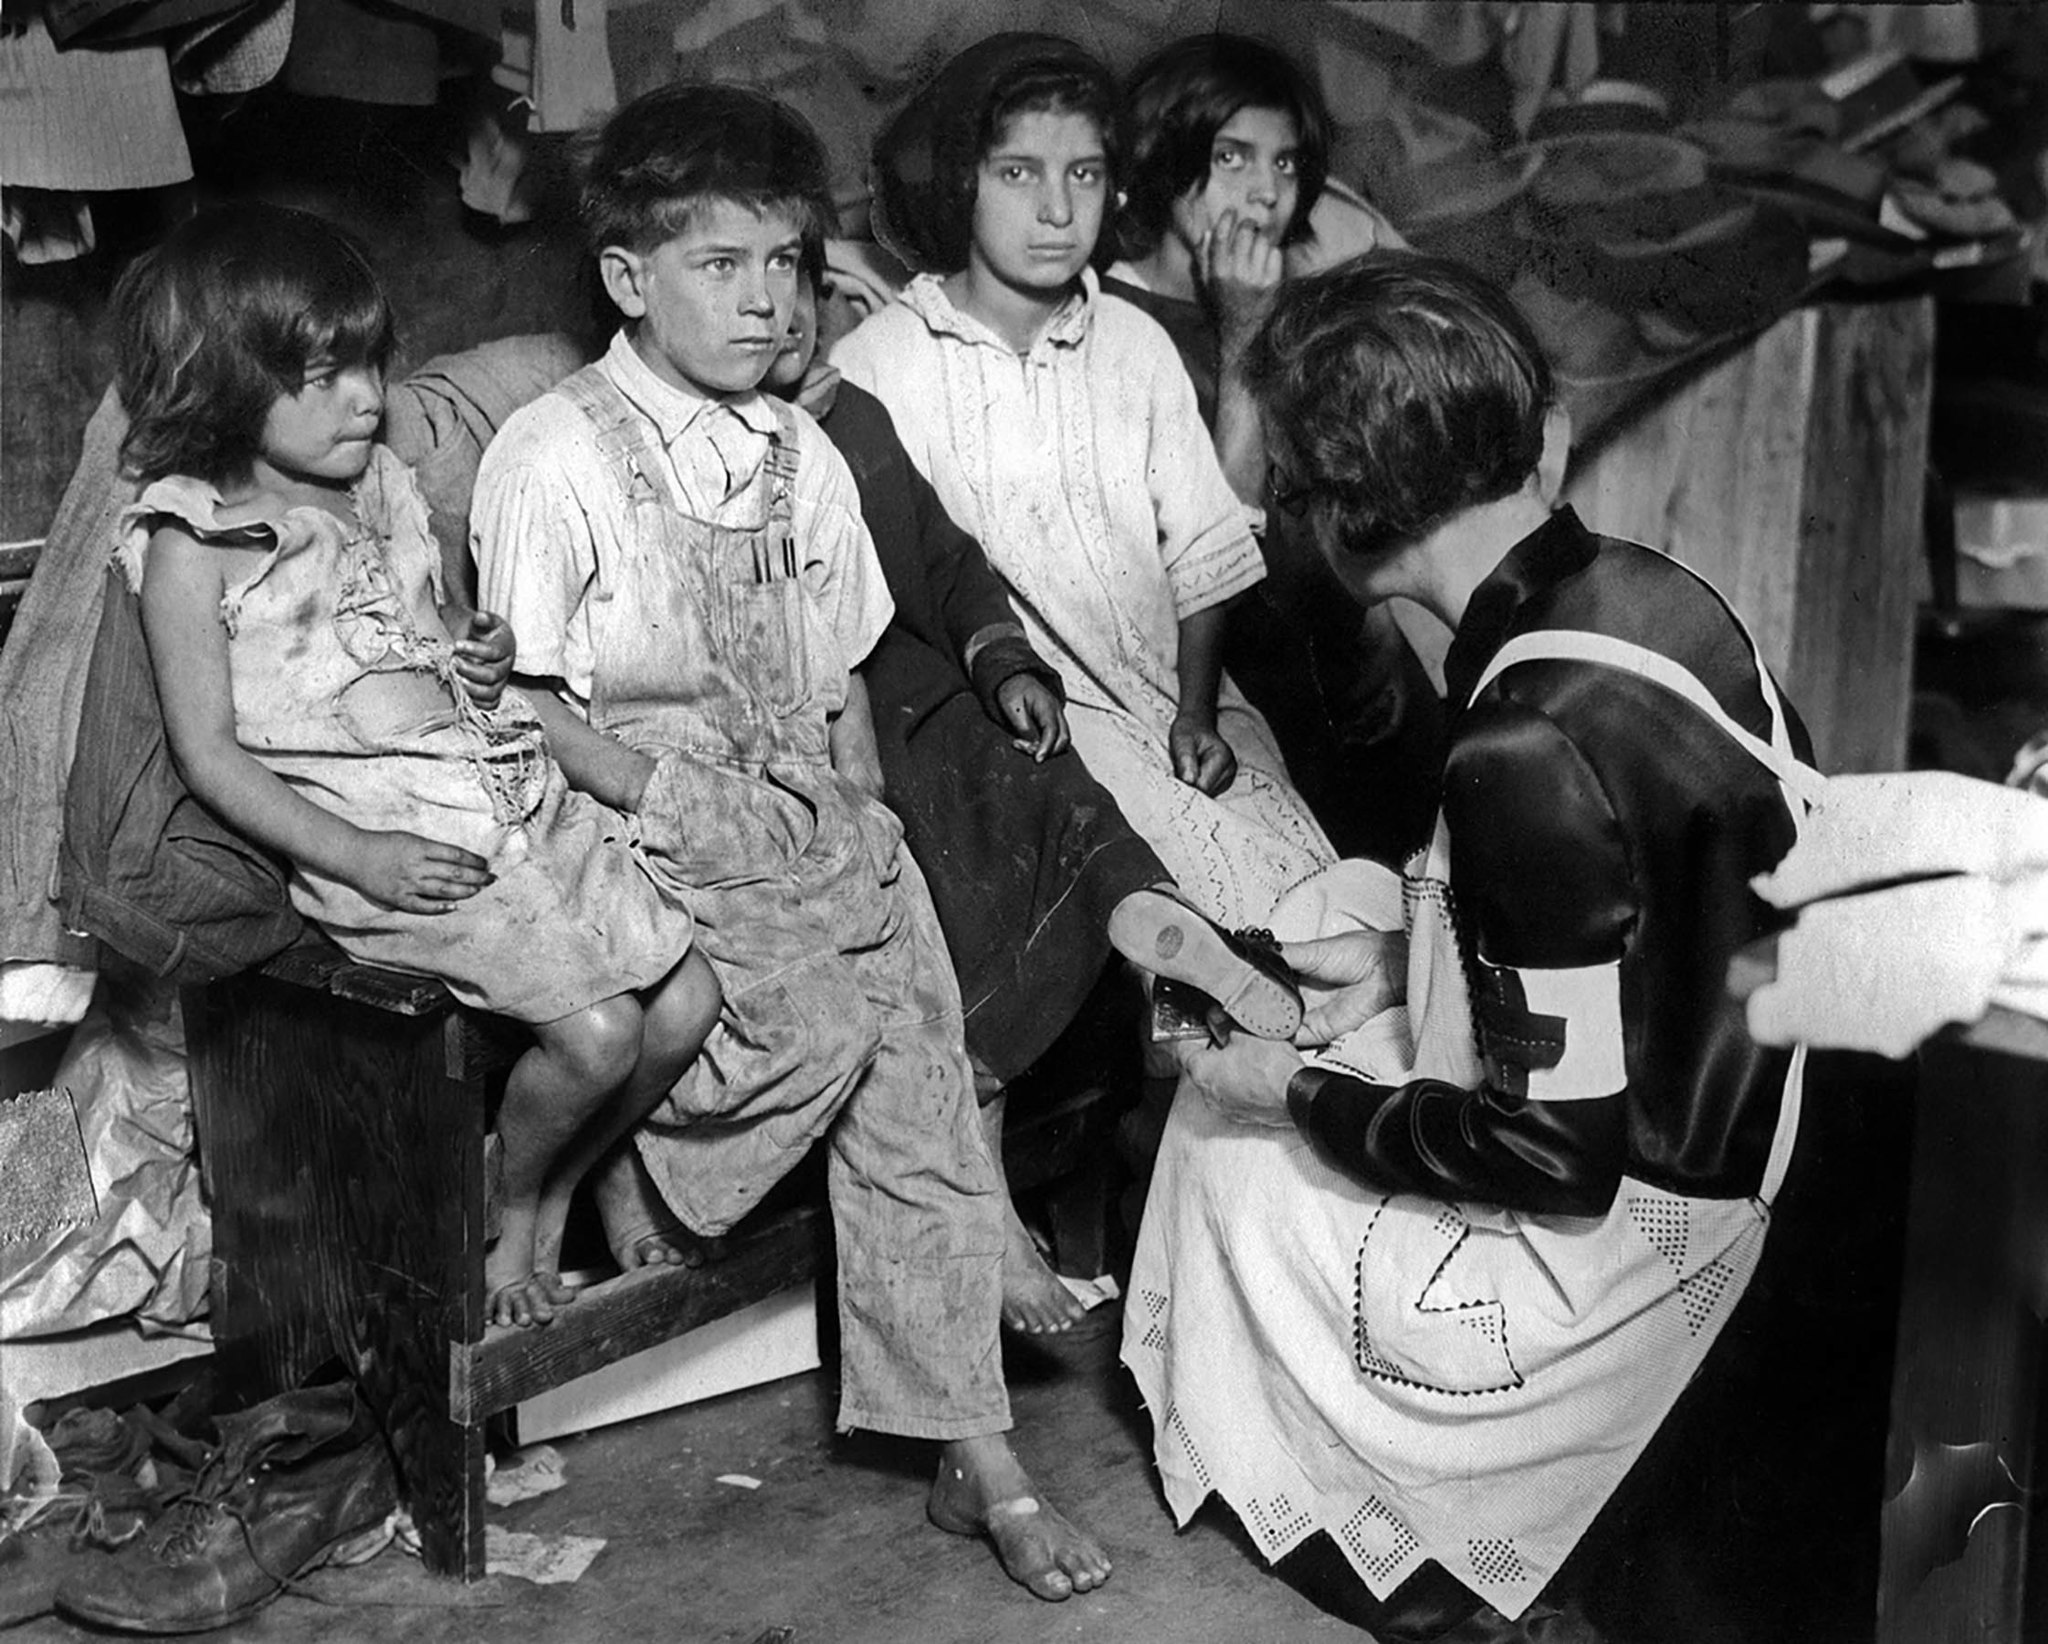 Mar. 14,1928: Red Cross worker helps outfit destitute children after collapse of St. Francis Dam. Th